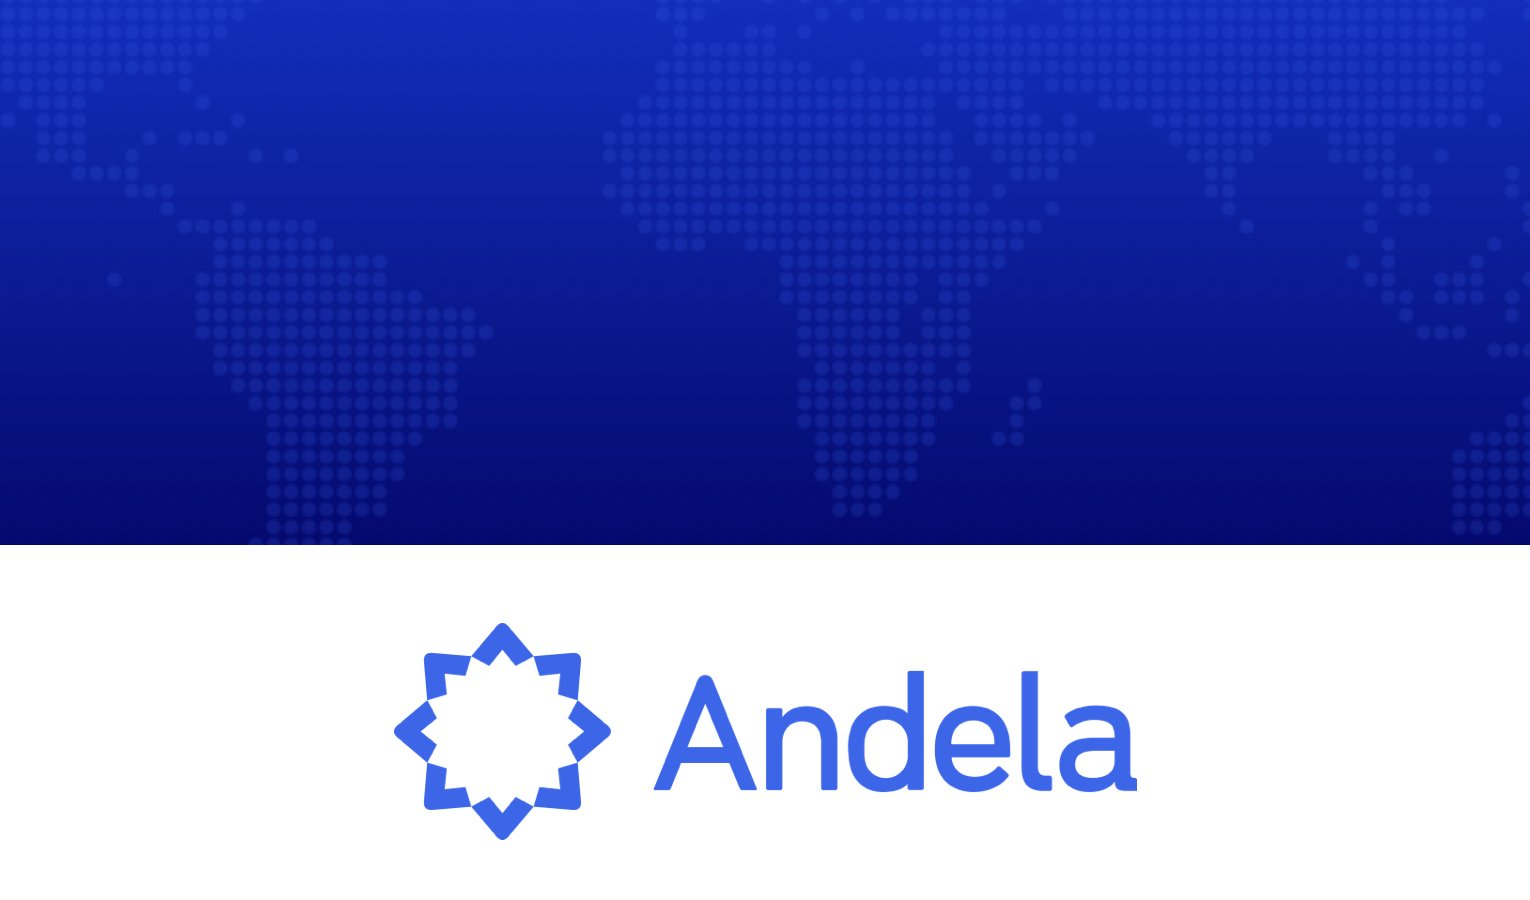 How Andela uses Troops to increase pipeline, shorten sales cycles, and prevent churn